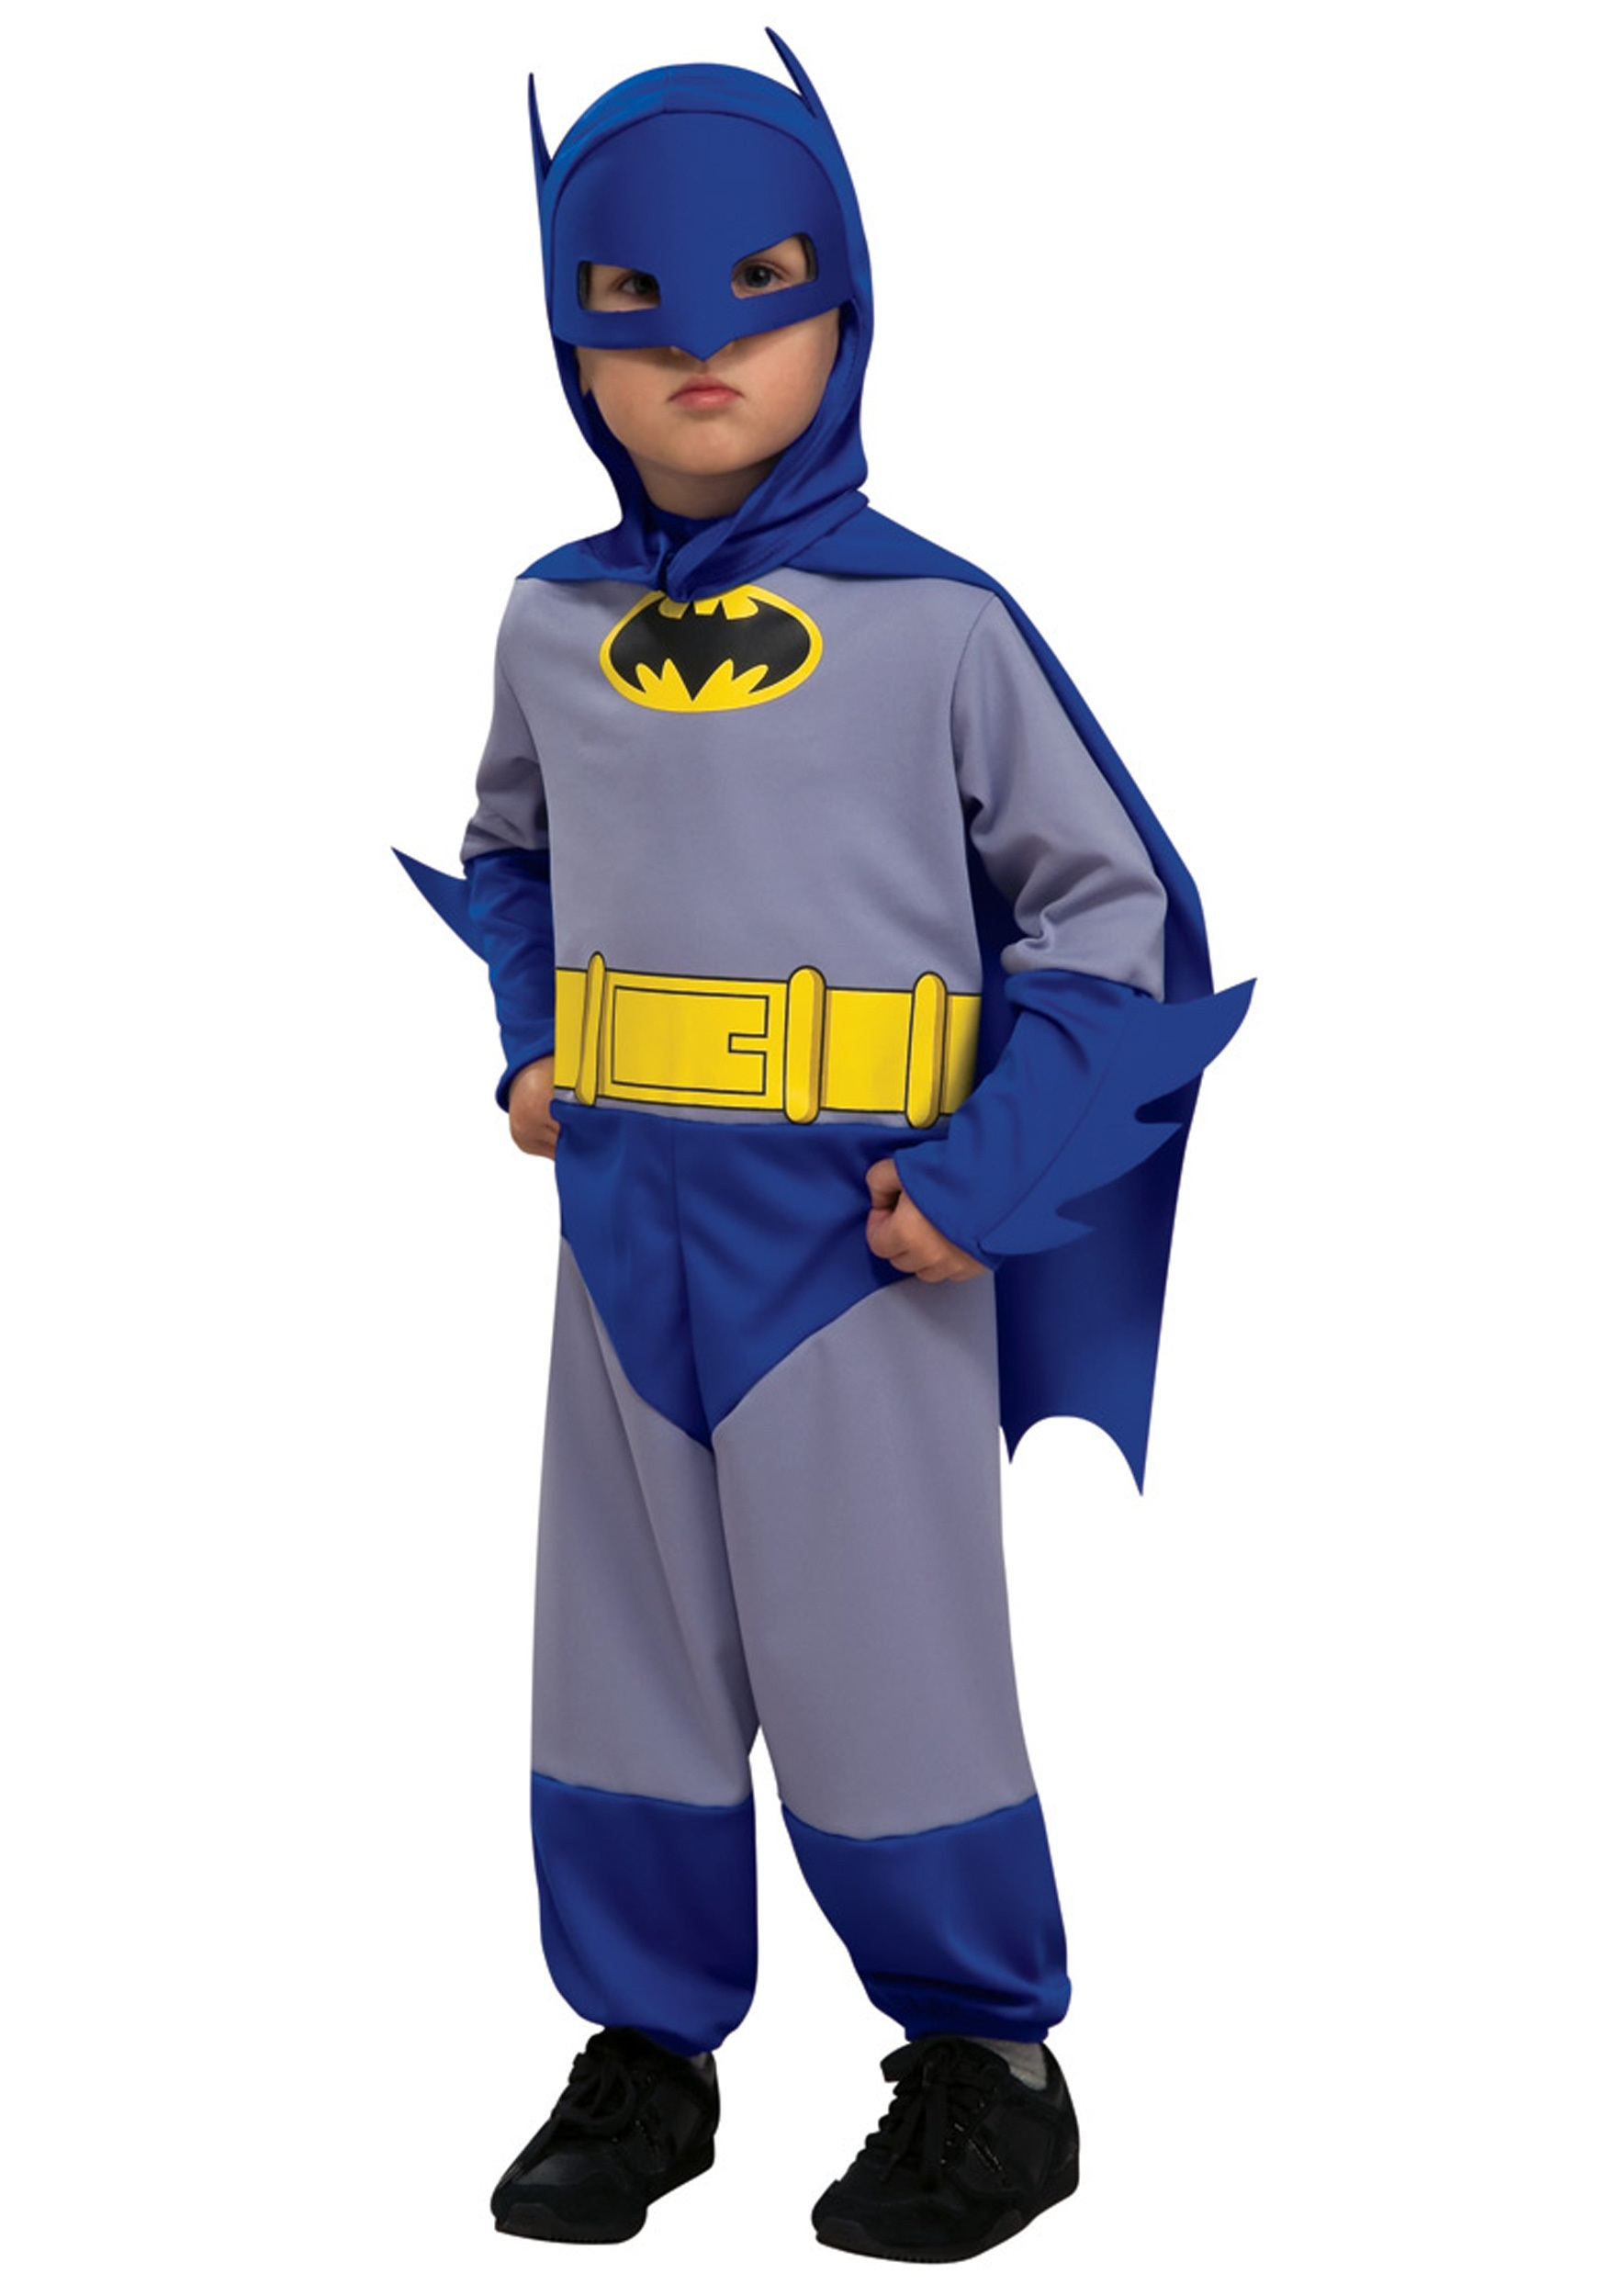 Home // Kids // Batman // Batman is DC Comics most famous Superhero. Patrolling the streets of Gotham to protect it from the likes of The Joker, Bane and a famous array of villains.